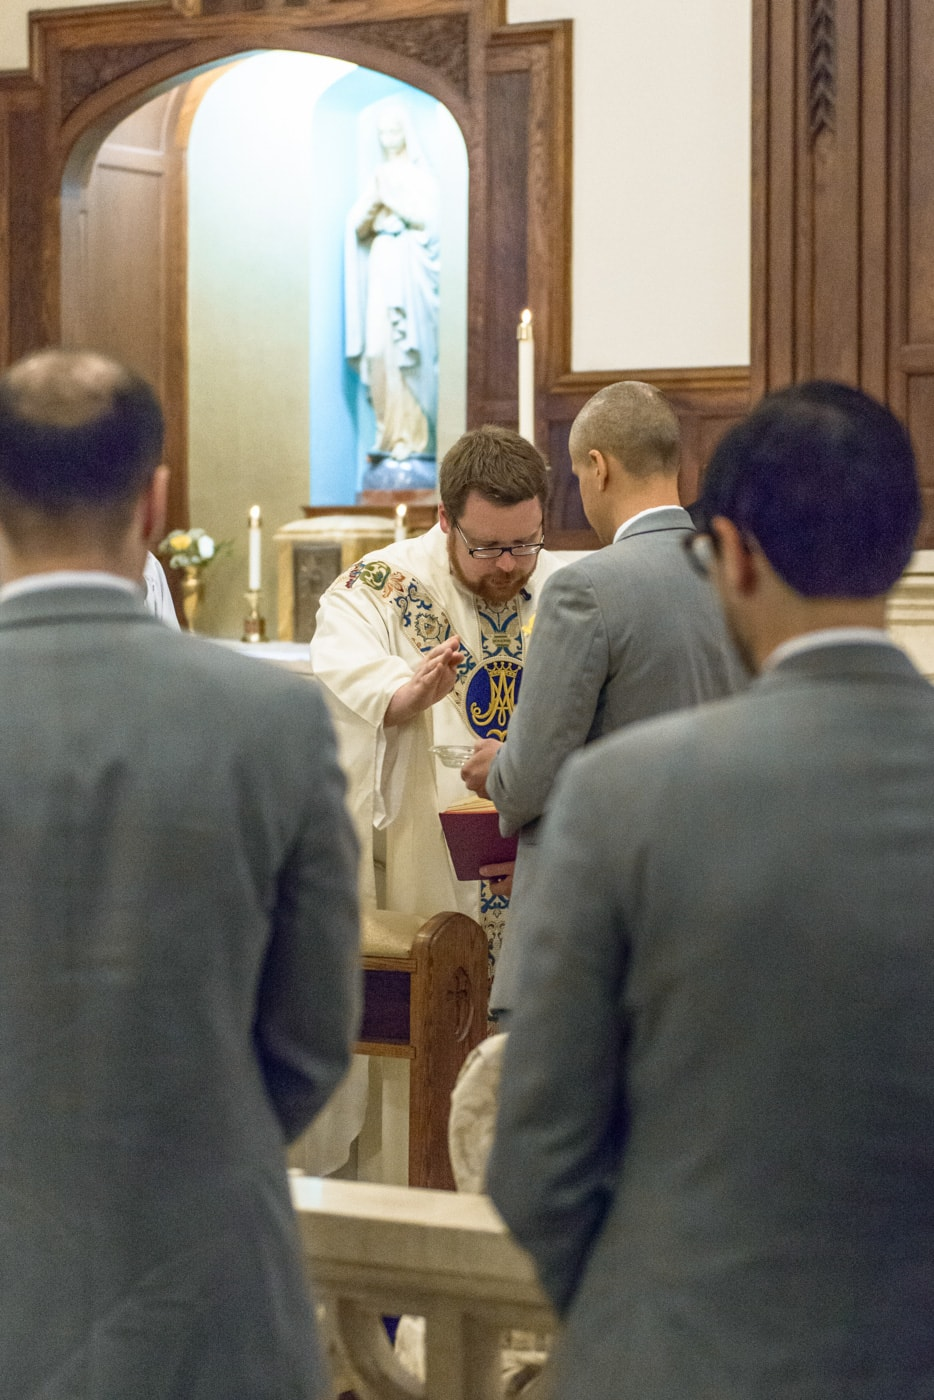 The priest blesses the rings during a wedding ceremony at St James Catholic Church in Falls Church, Virginia